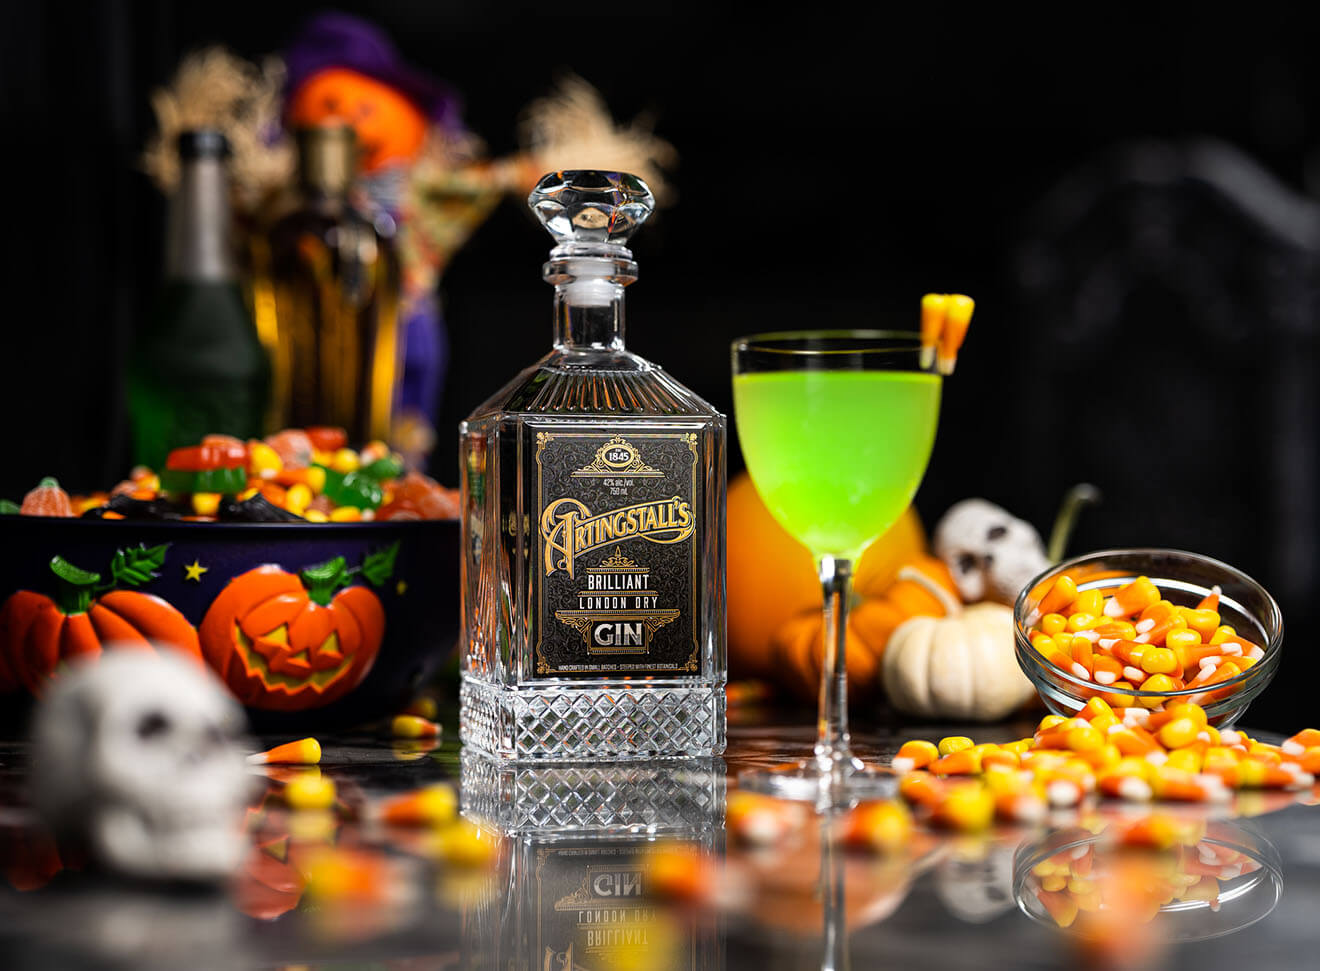 Ectoplasm Grimlet, cocktail, bottle and Halloween decor